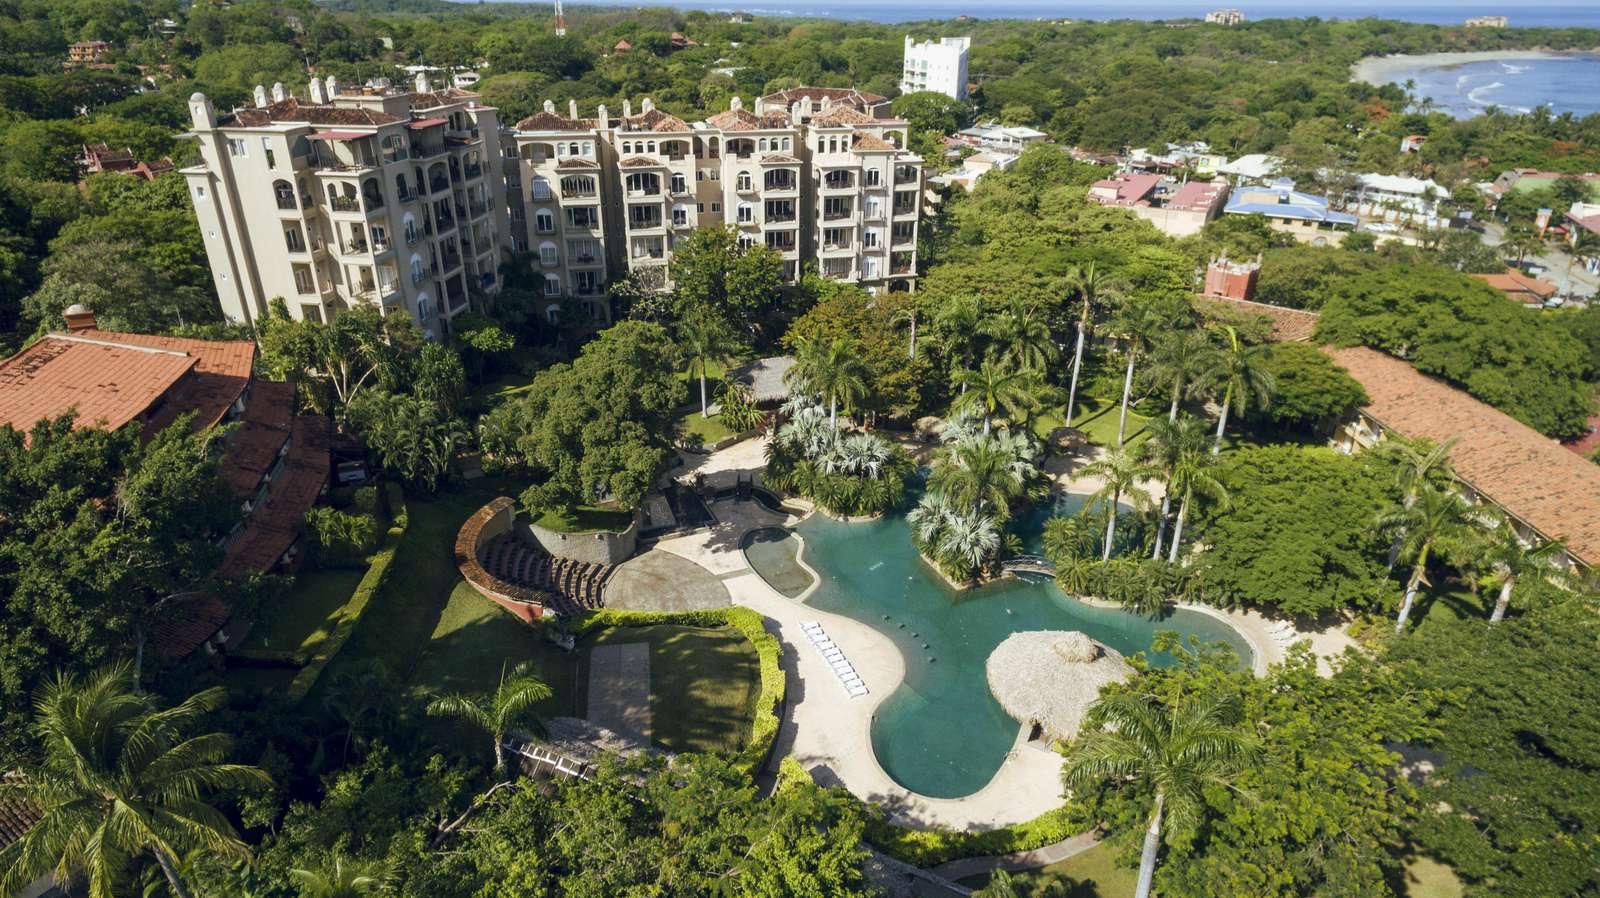 Aerial view of the Matapalo Building at the Diria Resort